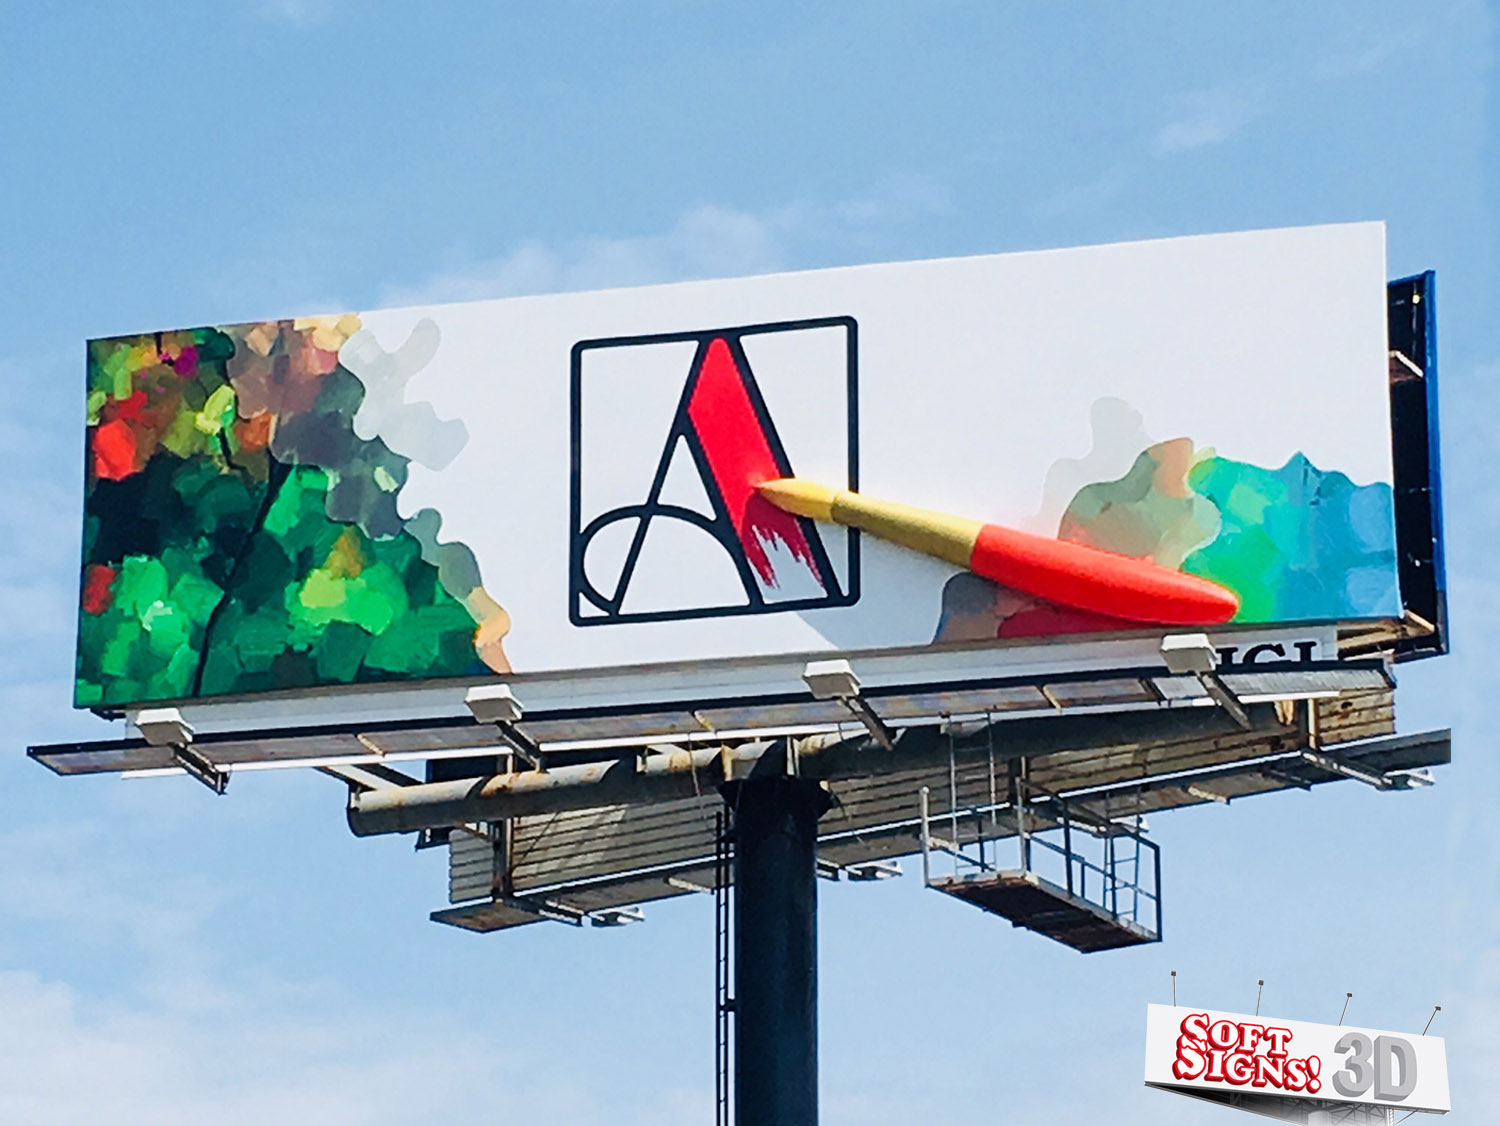 Paint Brush By Soft Signs 3D